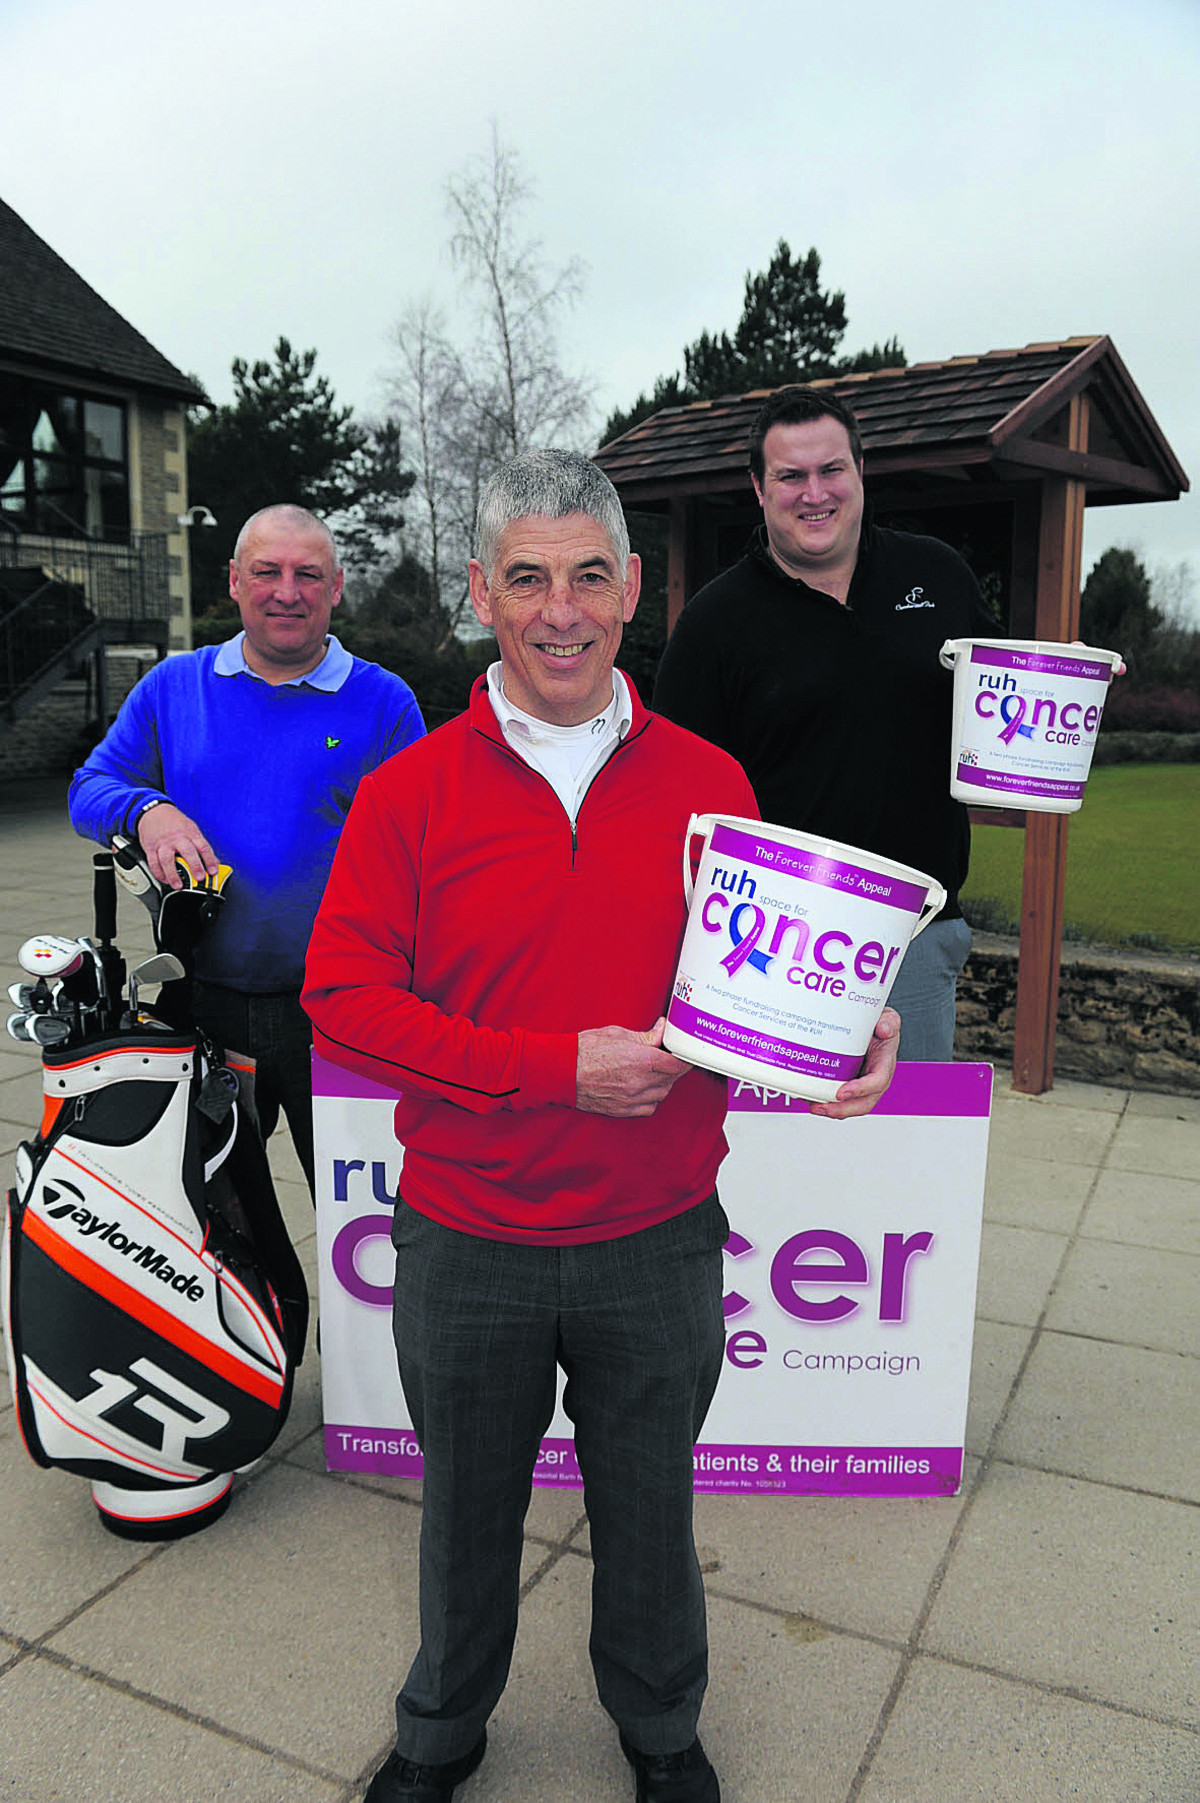 Martin Cooper, centre, with Mark Hobbs, left, and Ali James, who hope to raise £10,000